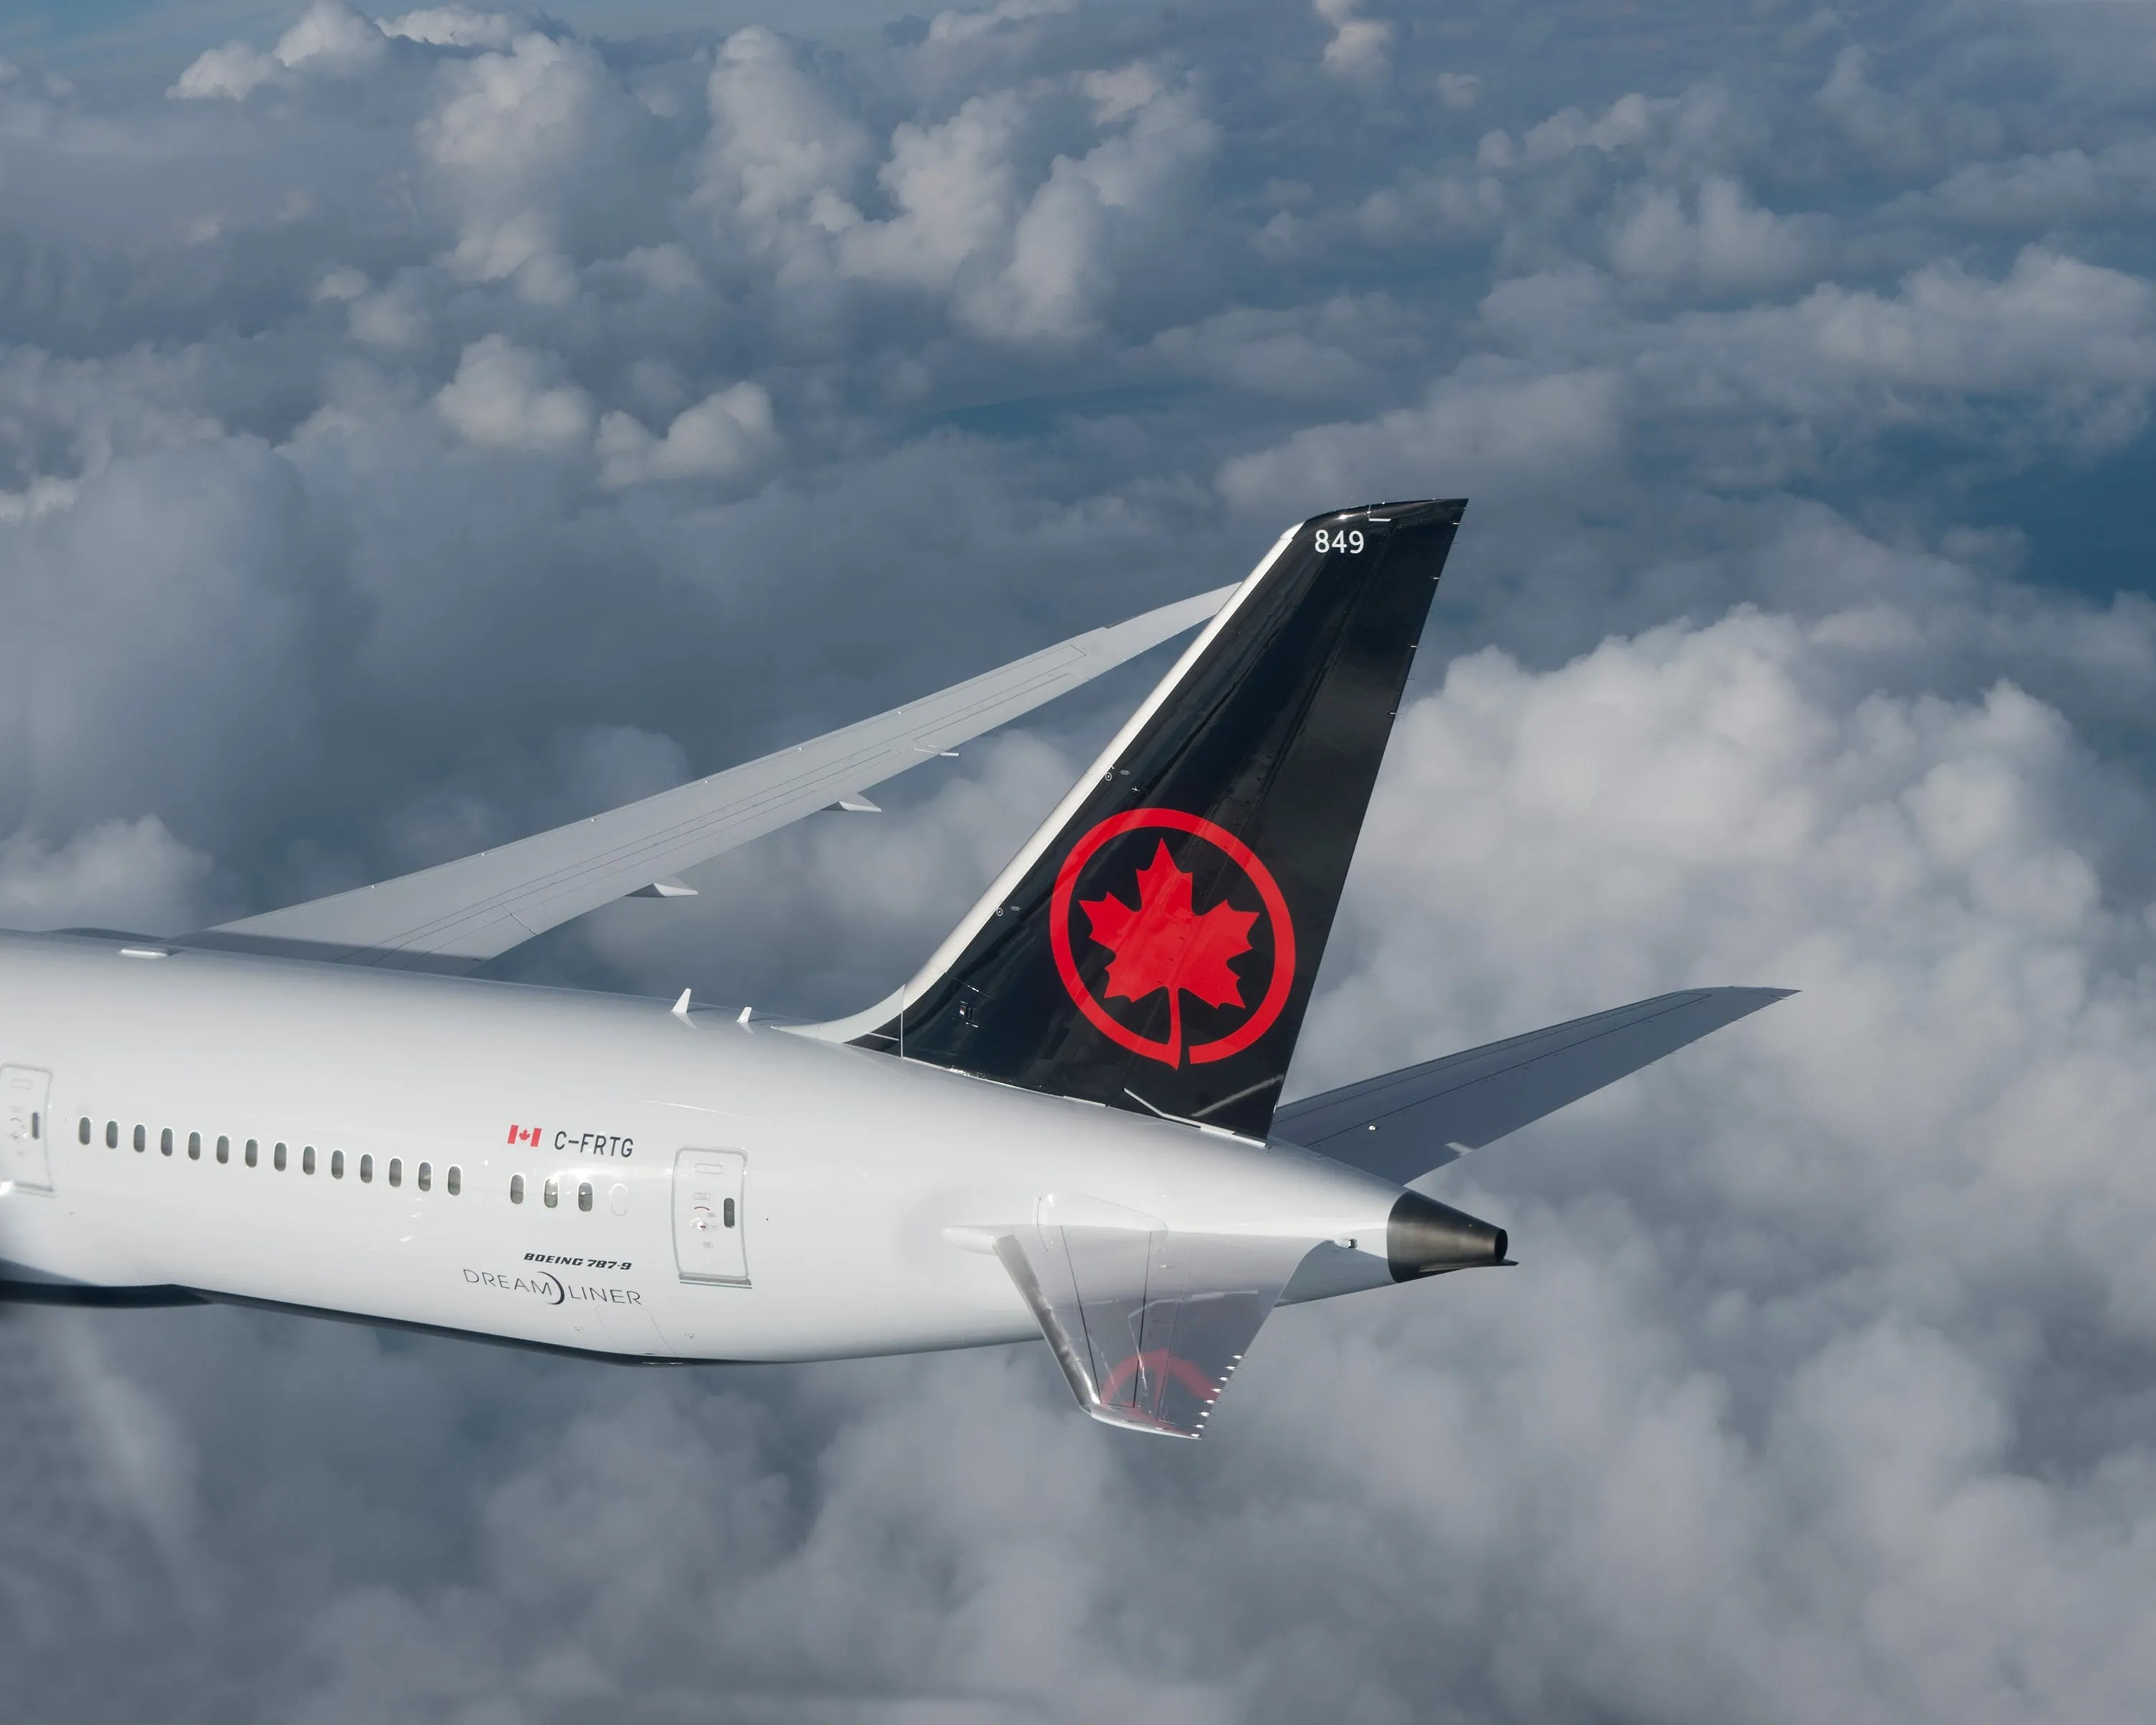 Air Canada announced a summer cross-border program with up to 220 daily flights between the United States and Canada as of August 9.